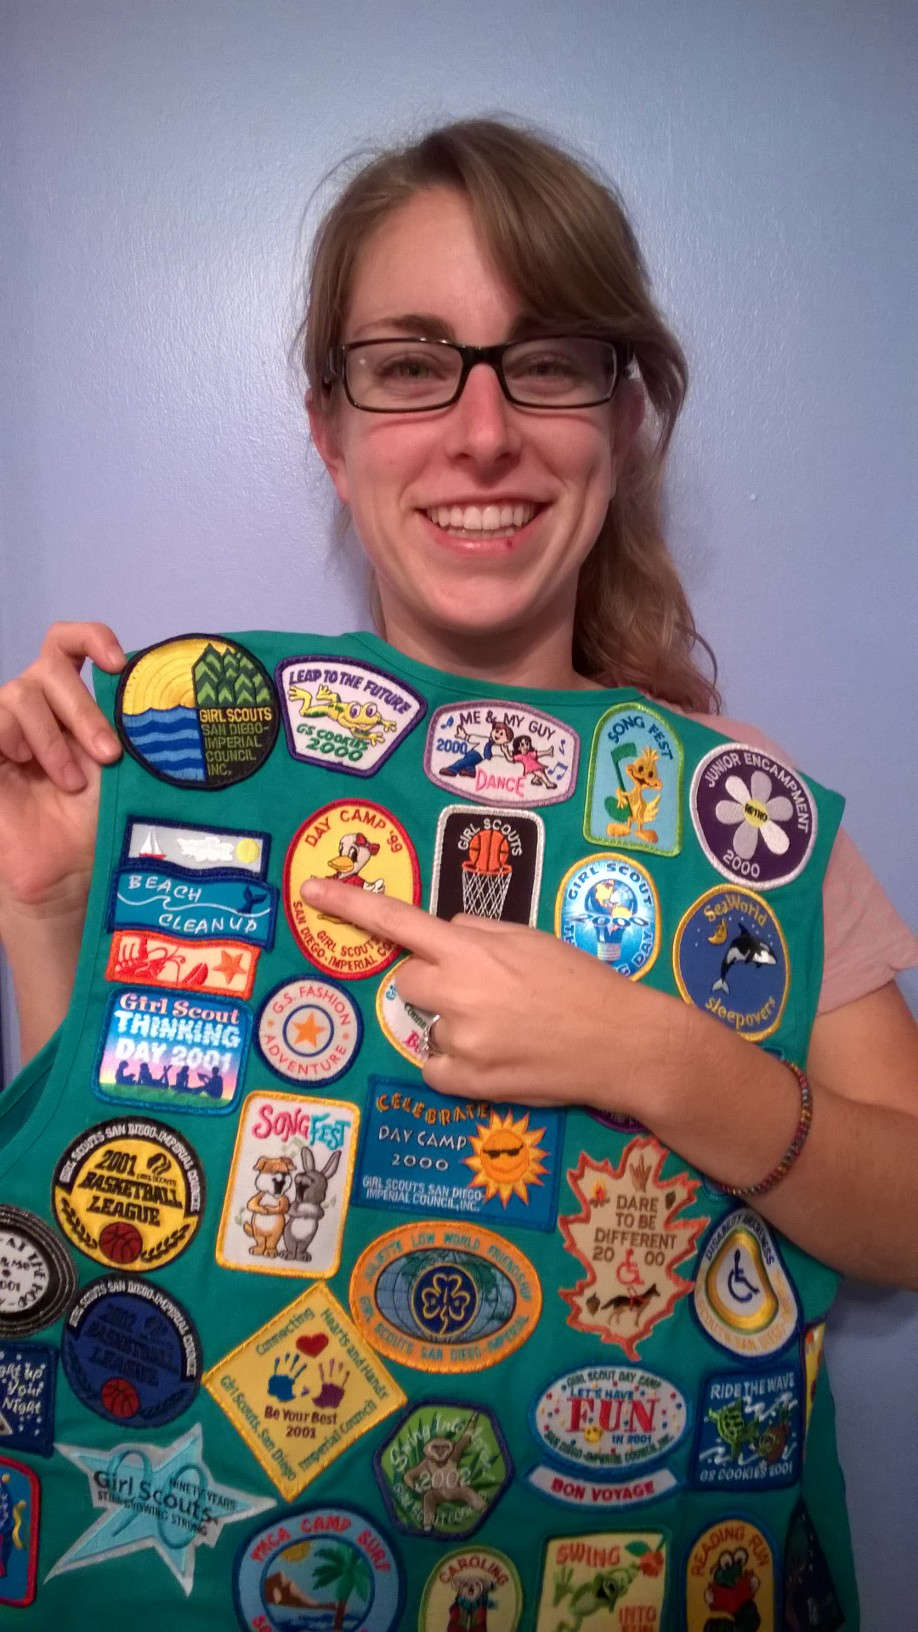 Emily poses proudly with her Girls Scout patch she received from ILACSD!